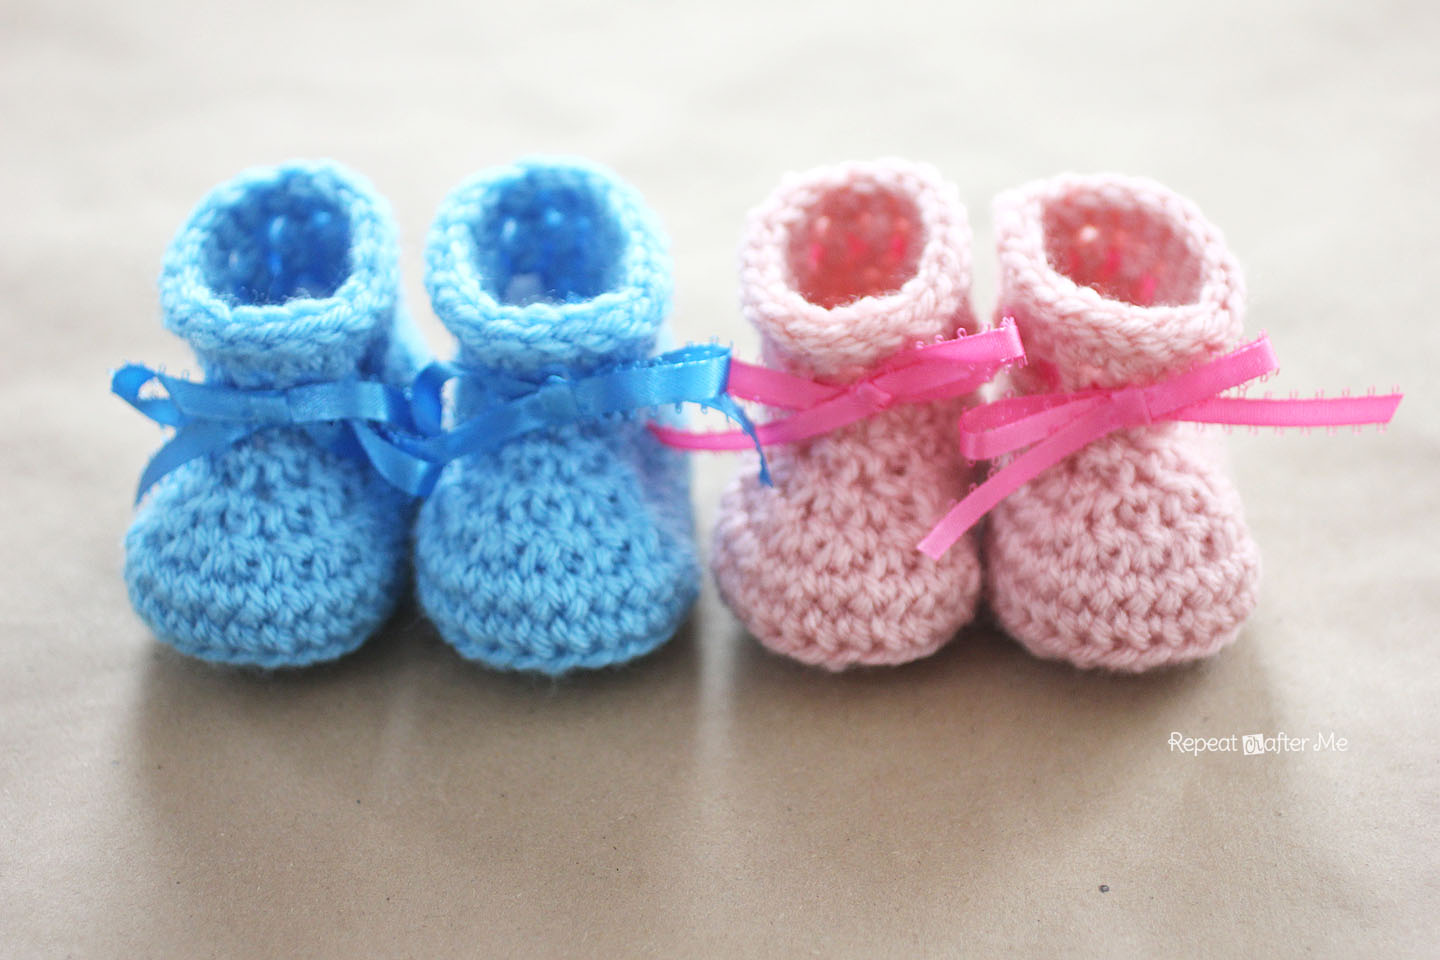 Crochet Newborn : Crochet Newborn Baby Booties Pattern - Repeat Crafter Me